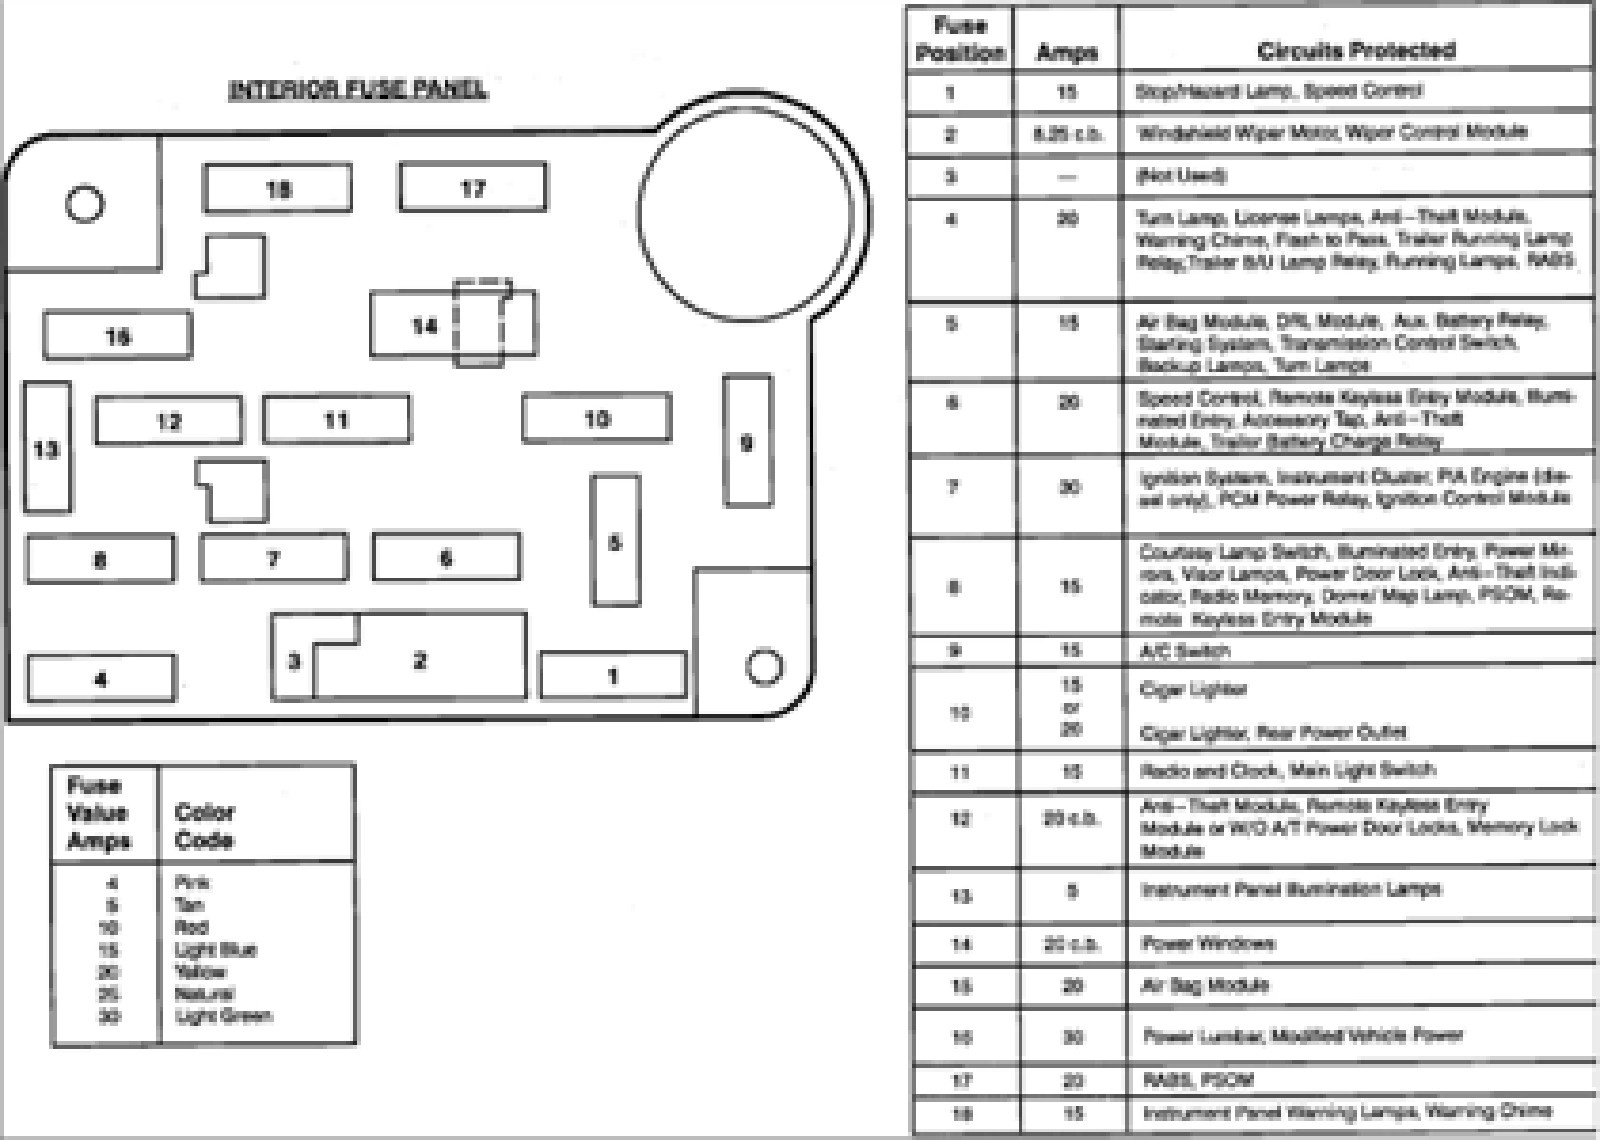 1990 crown victoria fuse box diagram wiring library1990 crown victoria fuse box diagram